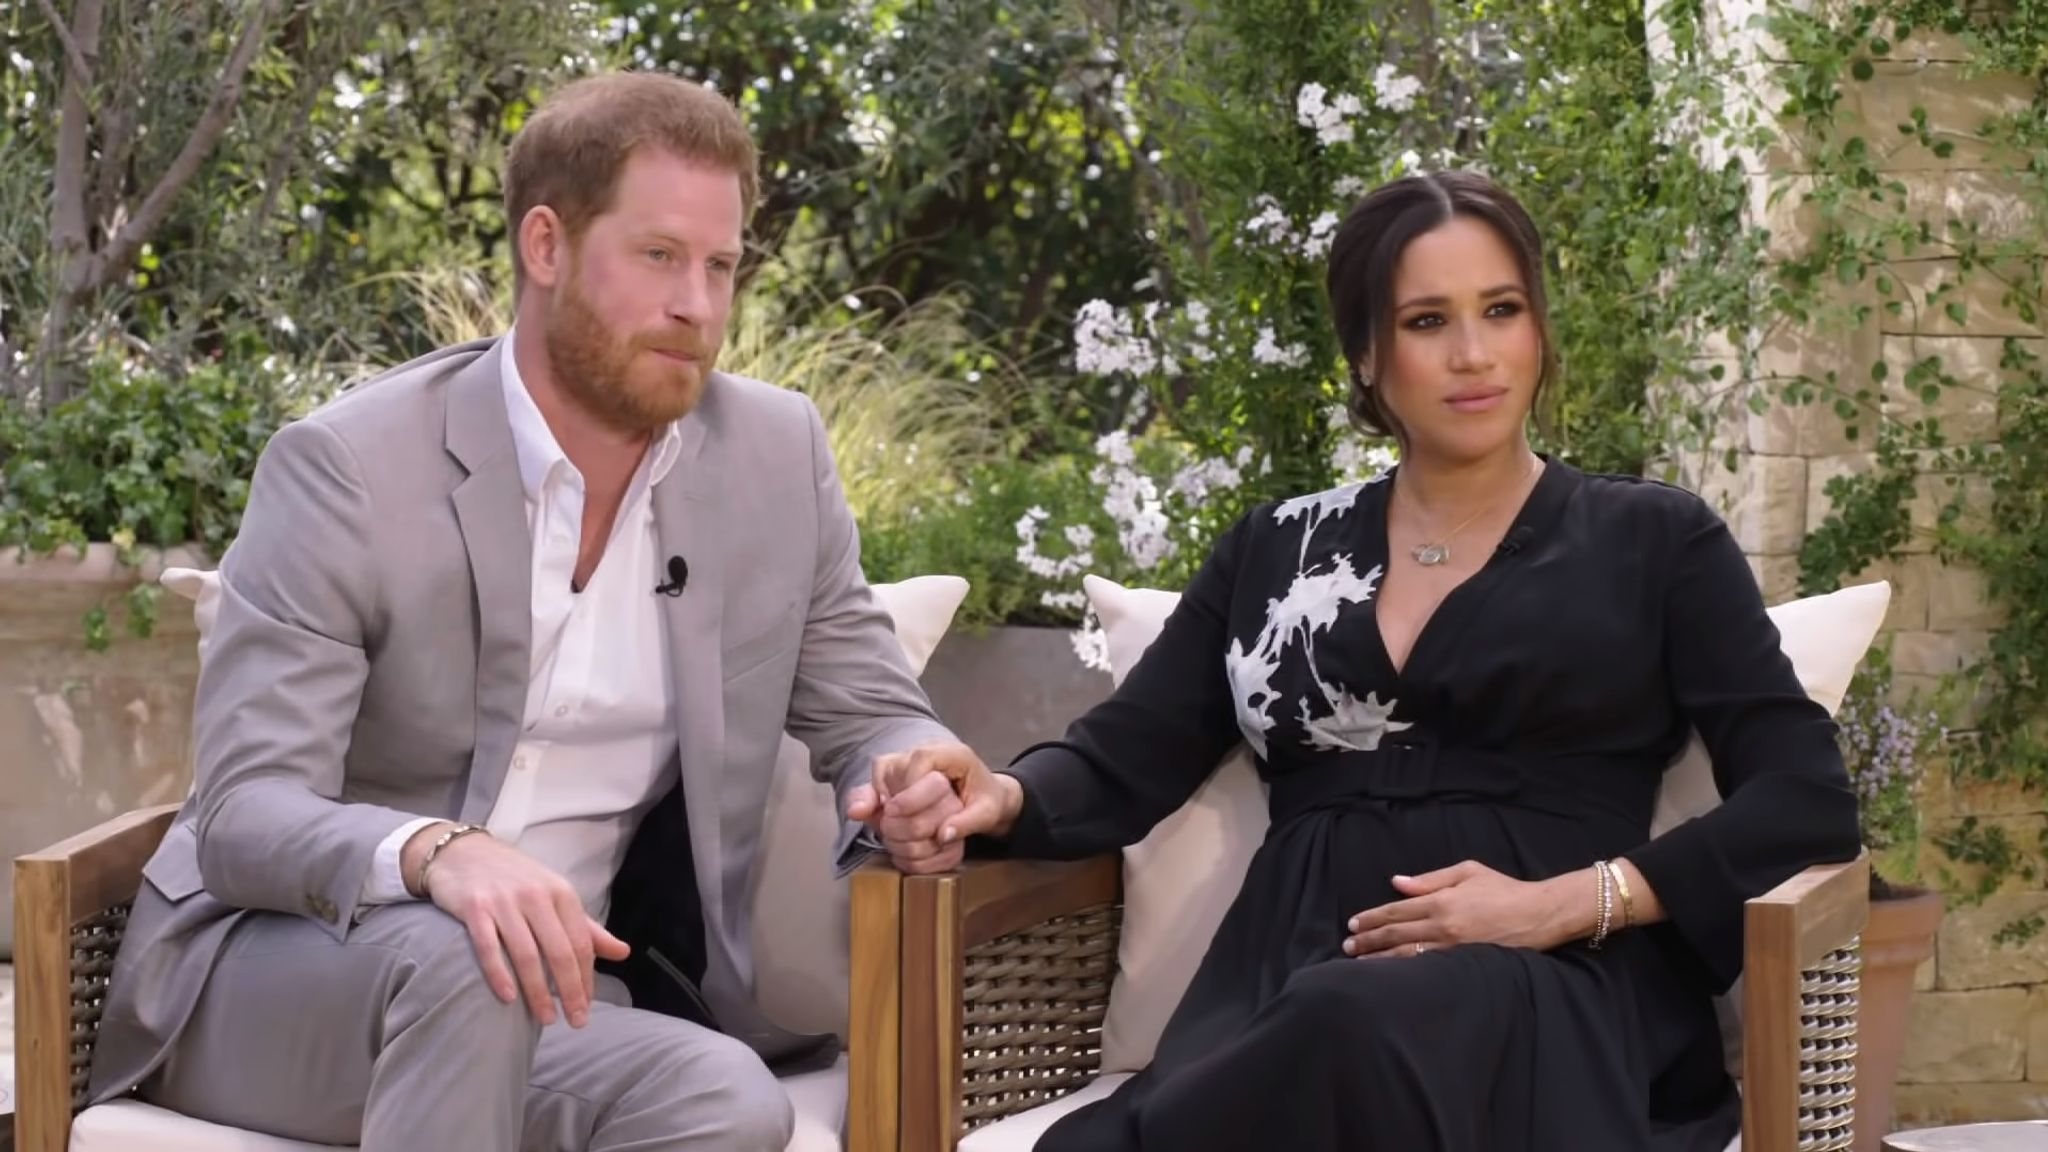 Meghan Markle And Prince Harry Did Not Legally Get Married Before Royal Wedding – Expert Explains The Misunderstanding!